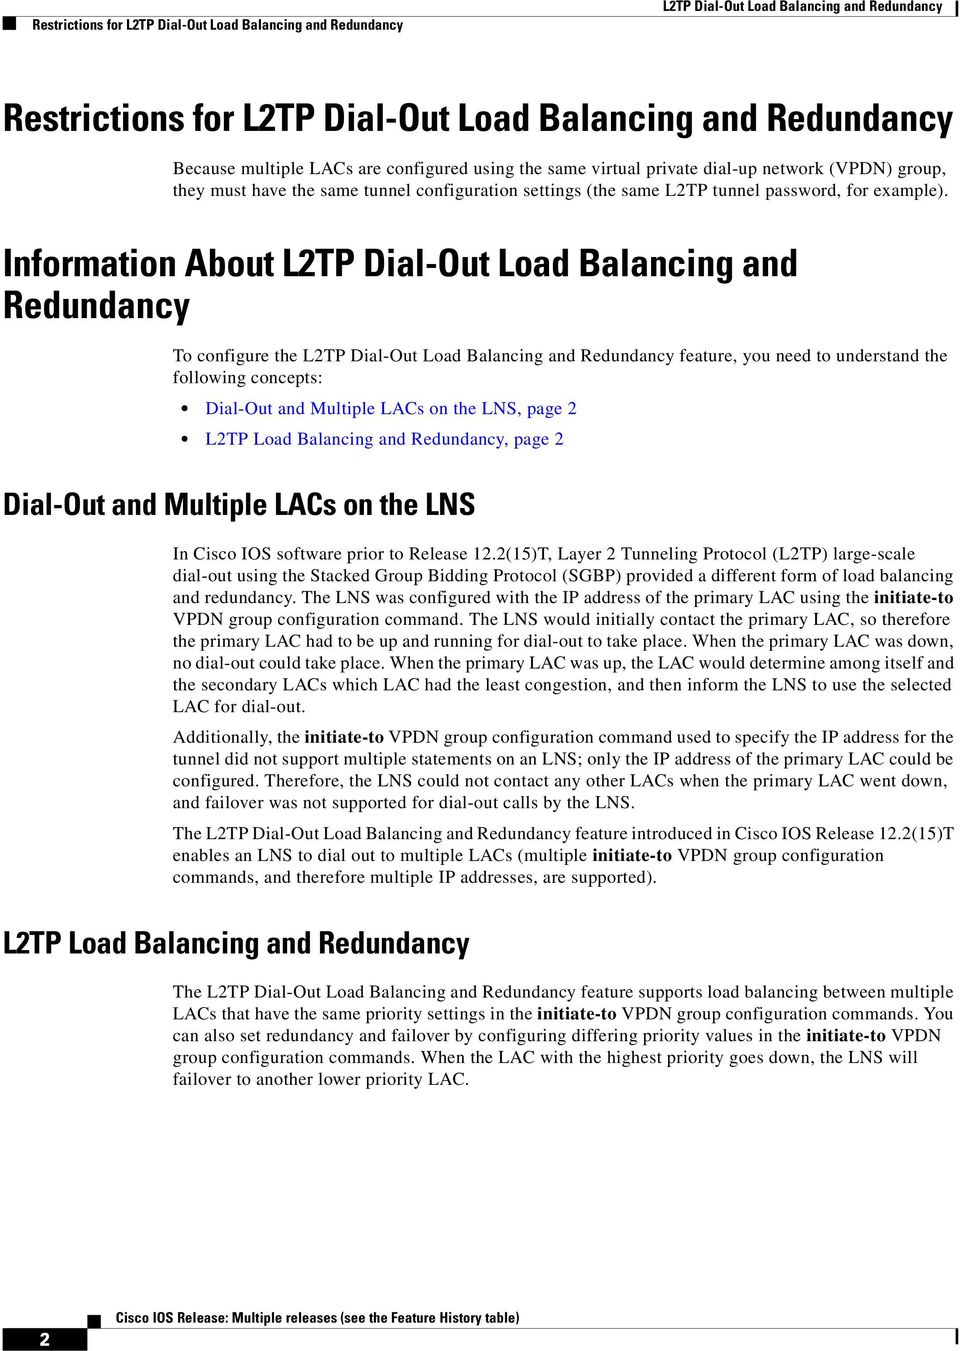 Dial-Out Load Balancing and Redundancy To configure the L2TP Dial-Out Load Balancing and Redundancy feature, you need to understand the following concepts: Dial-Out and Multiple LACs on the LNS, page